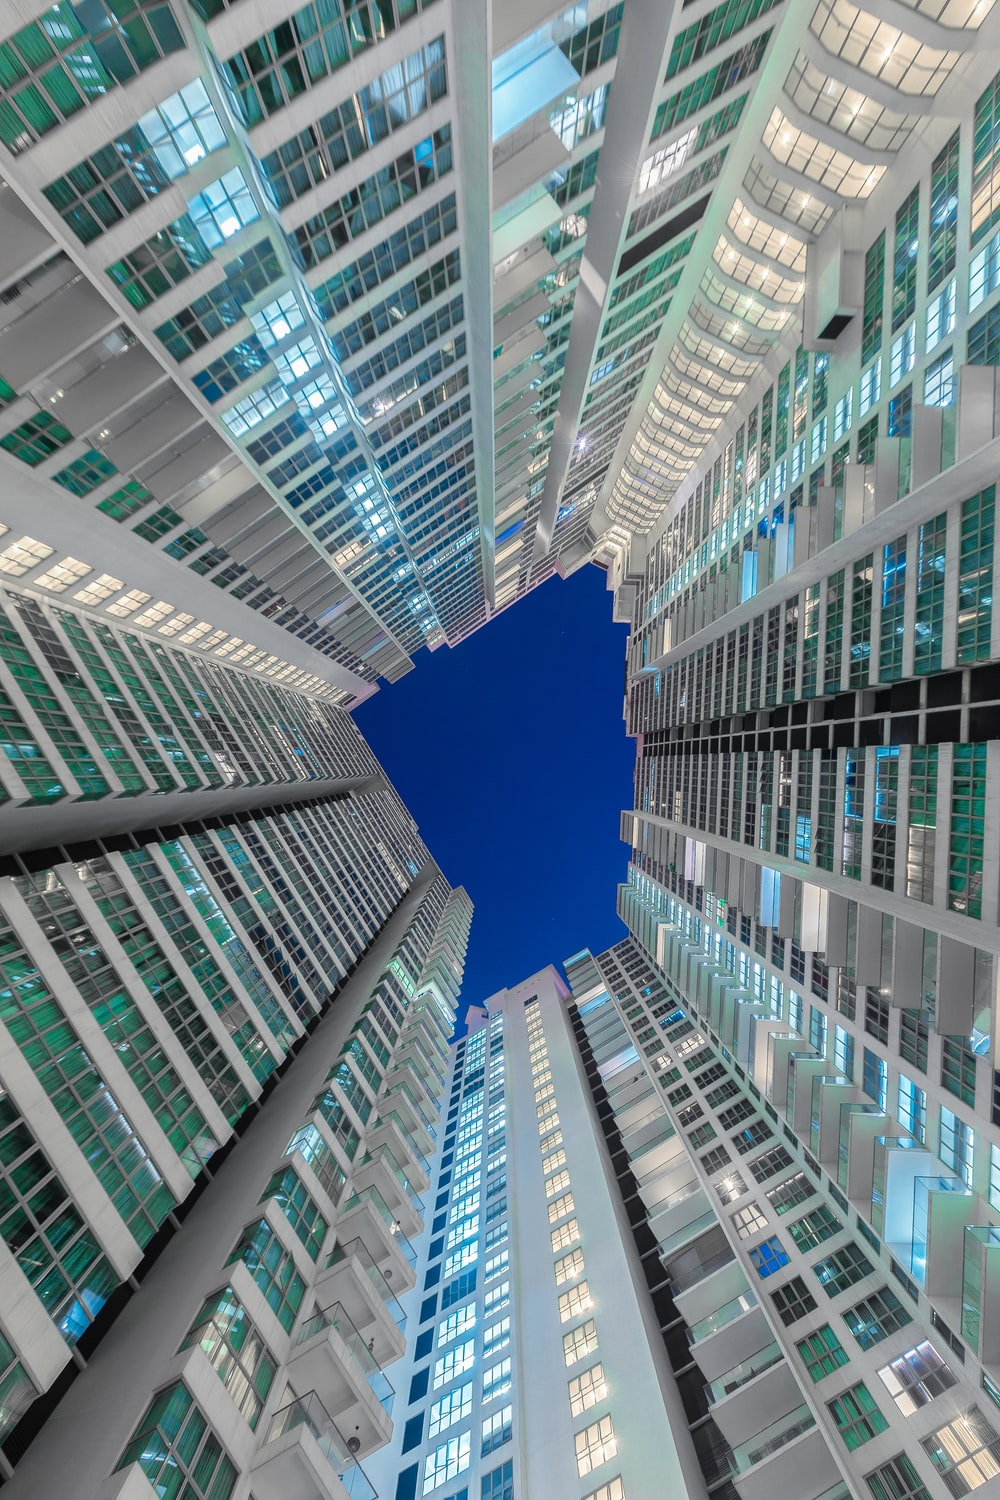 low angle photography of glass curtain buildings